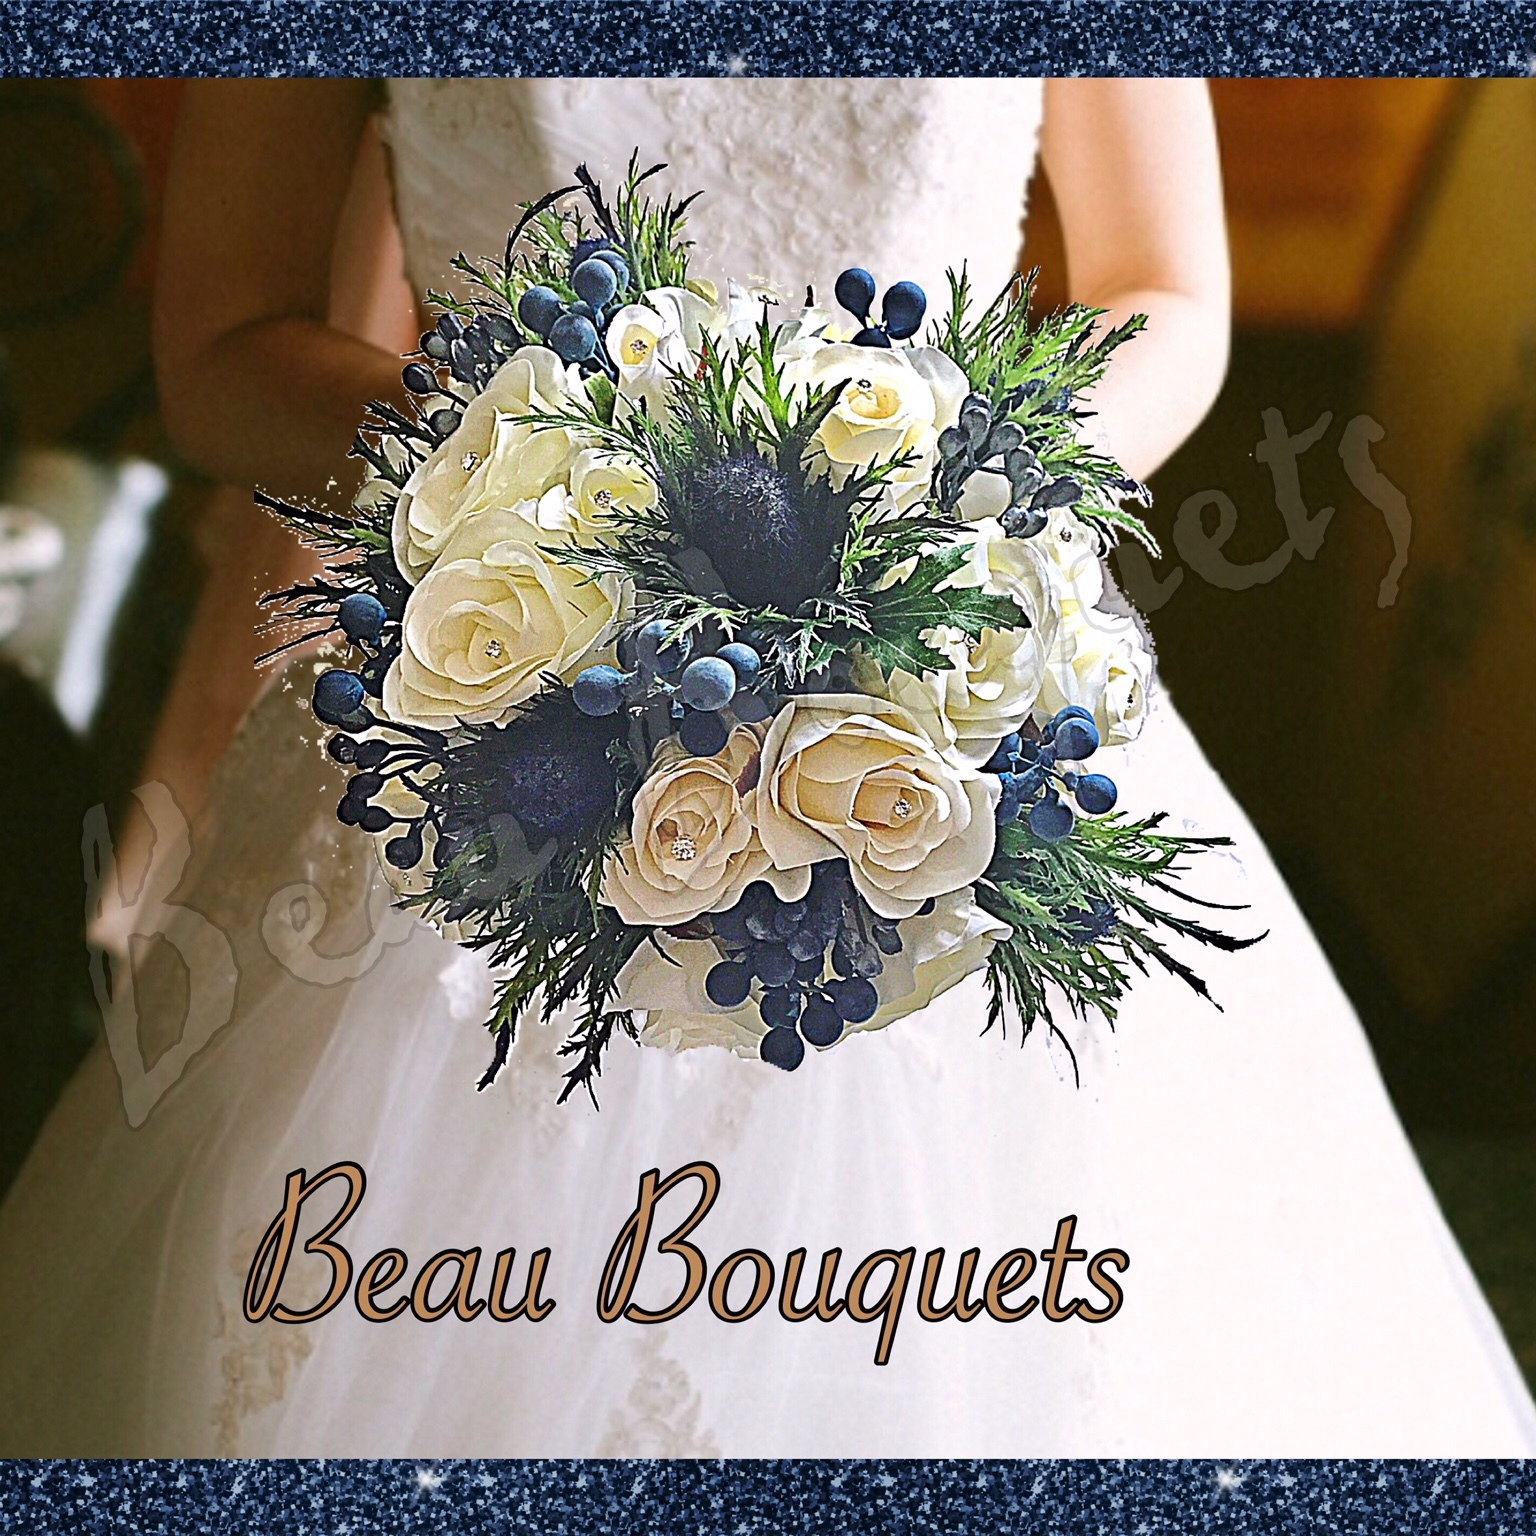 ETERNITY - SCOTTISH ROUND BRIDE BOUQUET Premium blue sea holly with silk ivory roses & blue berry touches